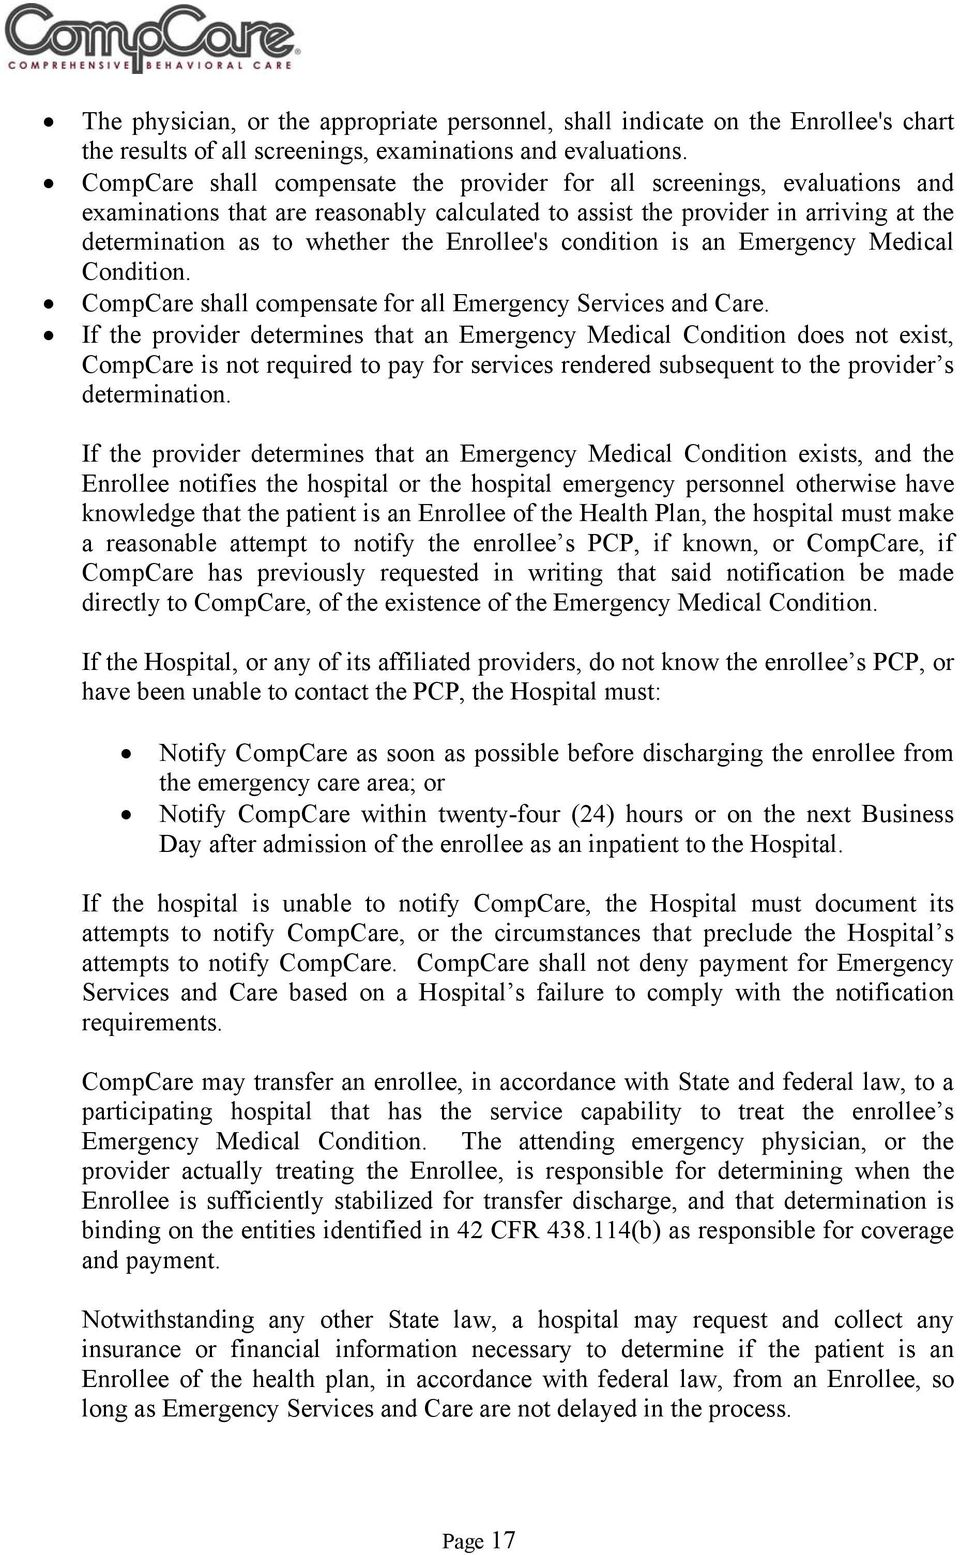 Enrollee's condition is an Emergency Medical Condition. CompCare shall compensate for all Emergency Services and Care.